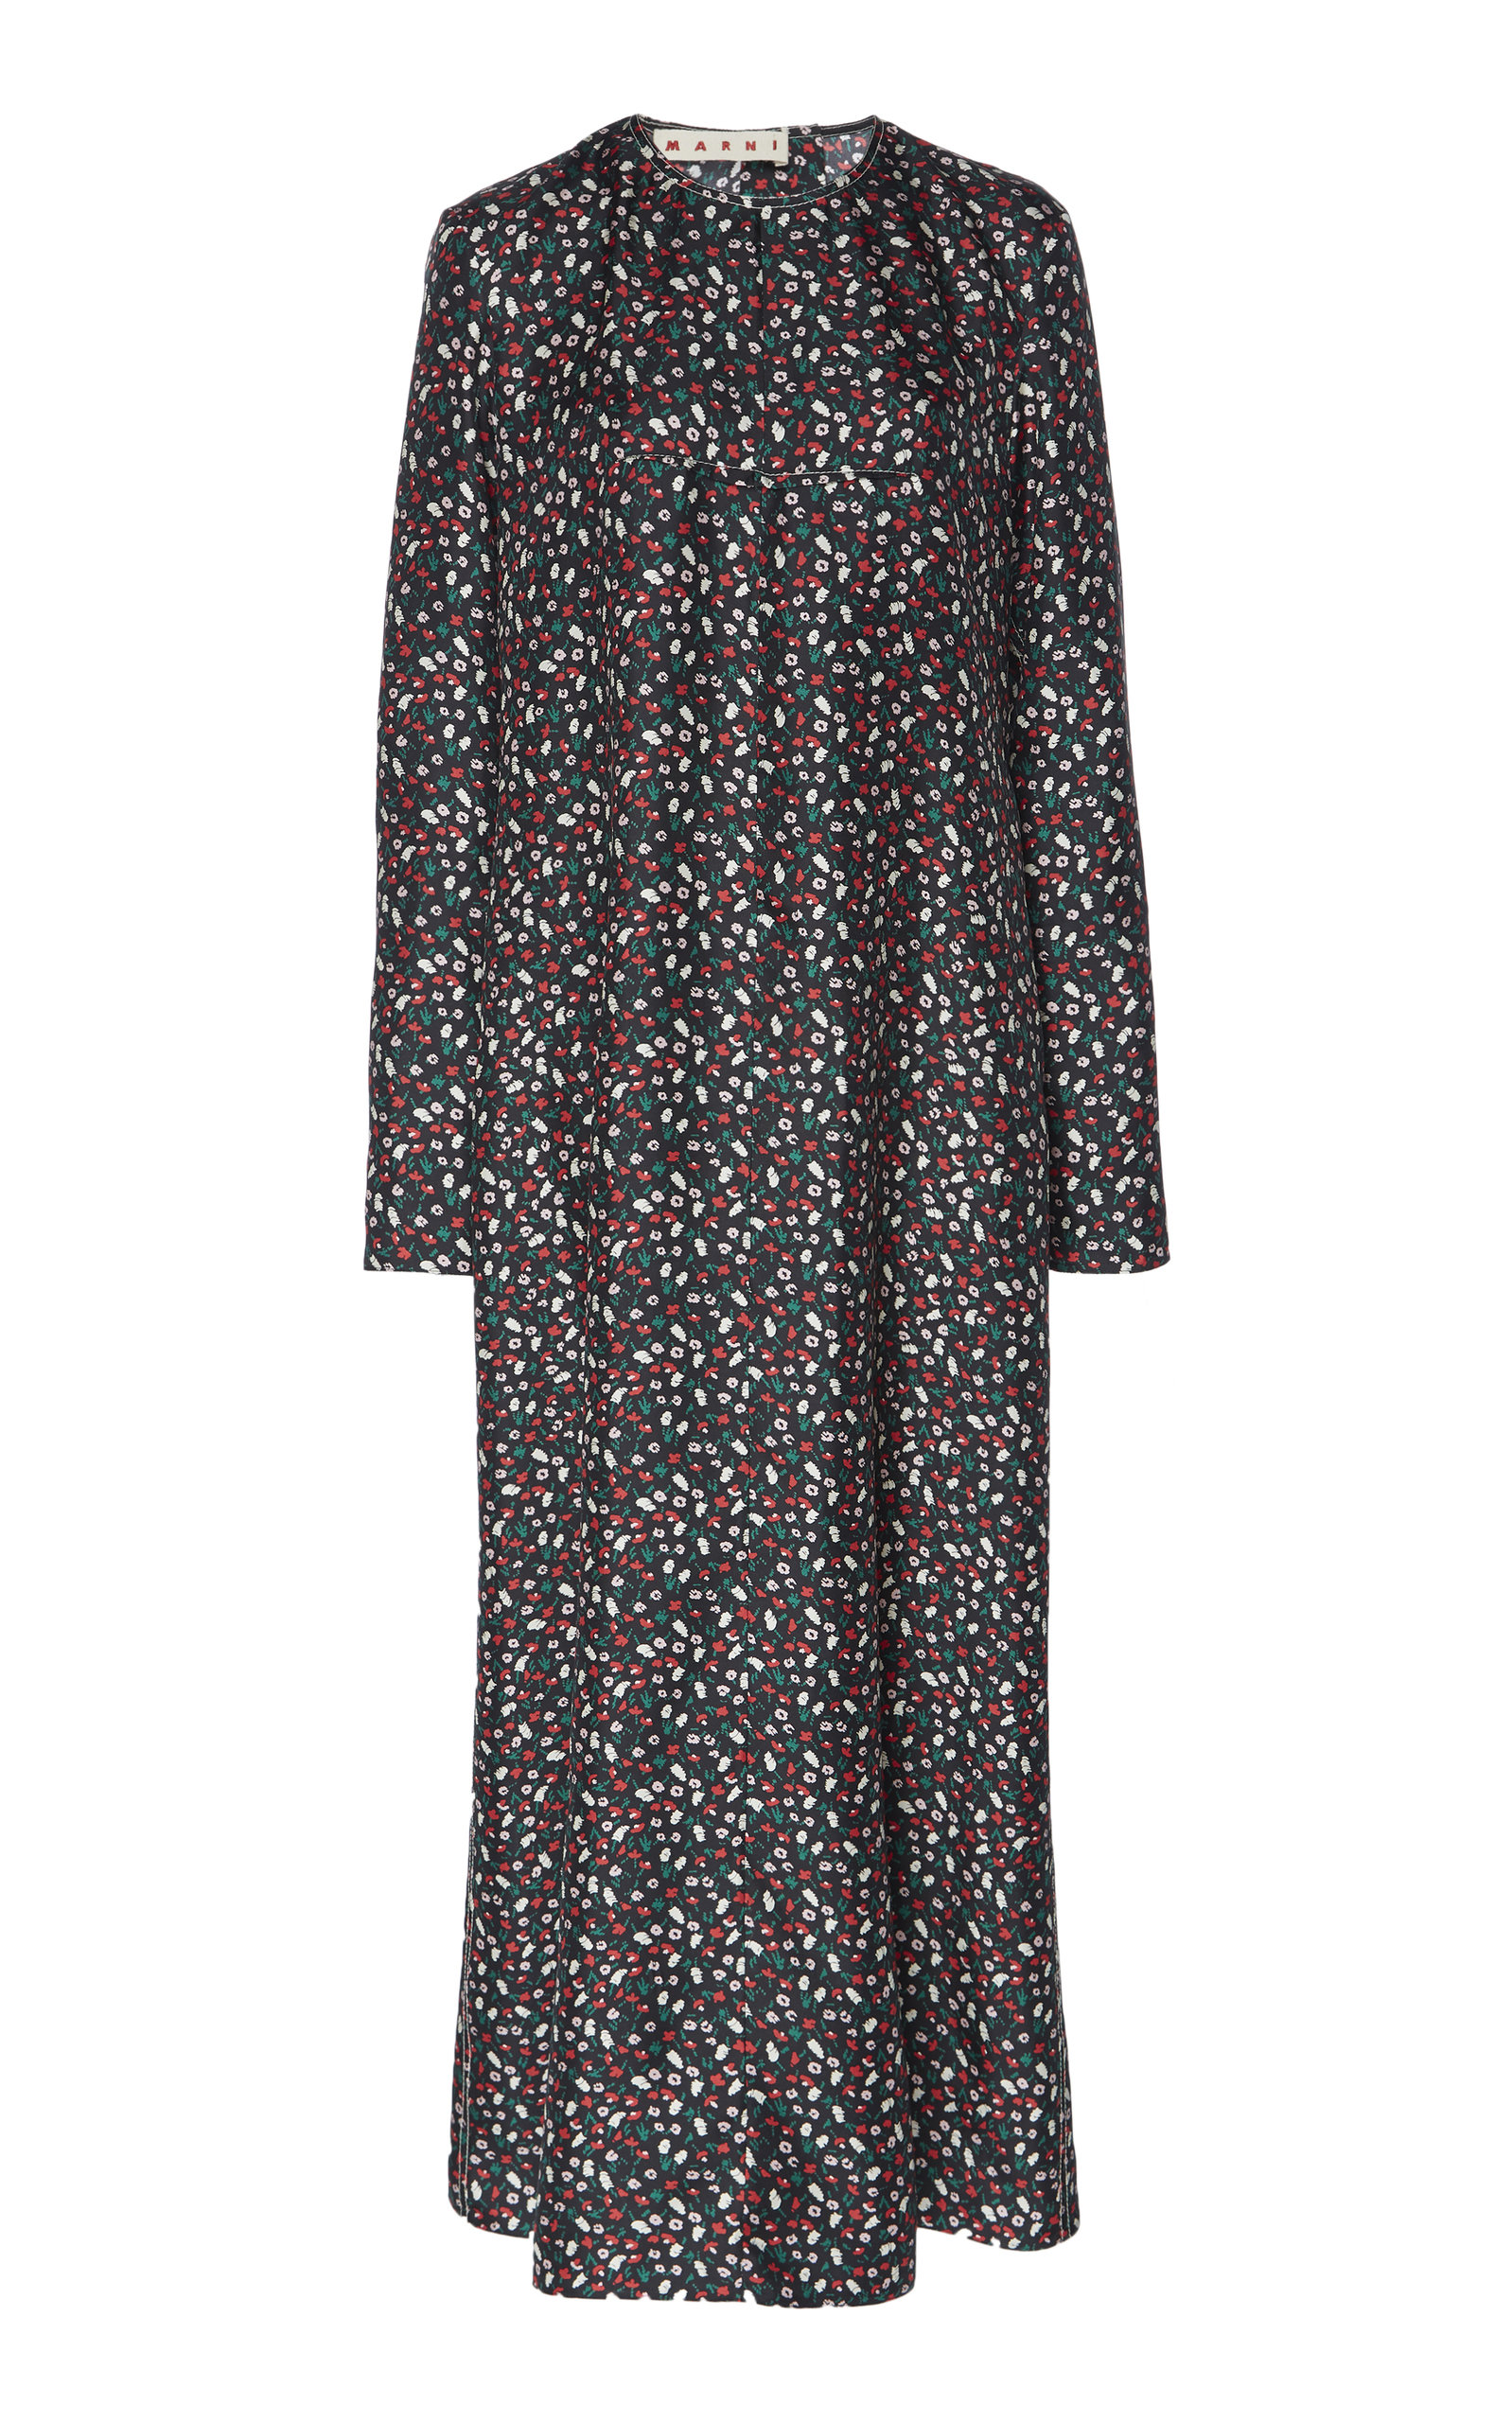 Buy Marni Micro Floral Print Silk Dress online, shop Marni at the best price